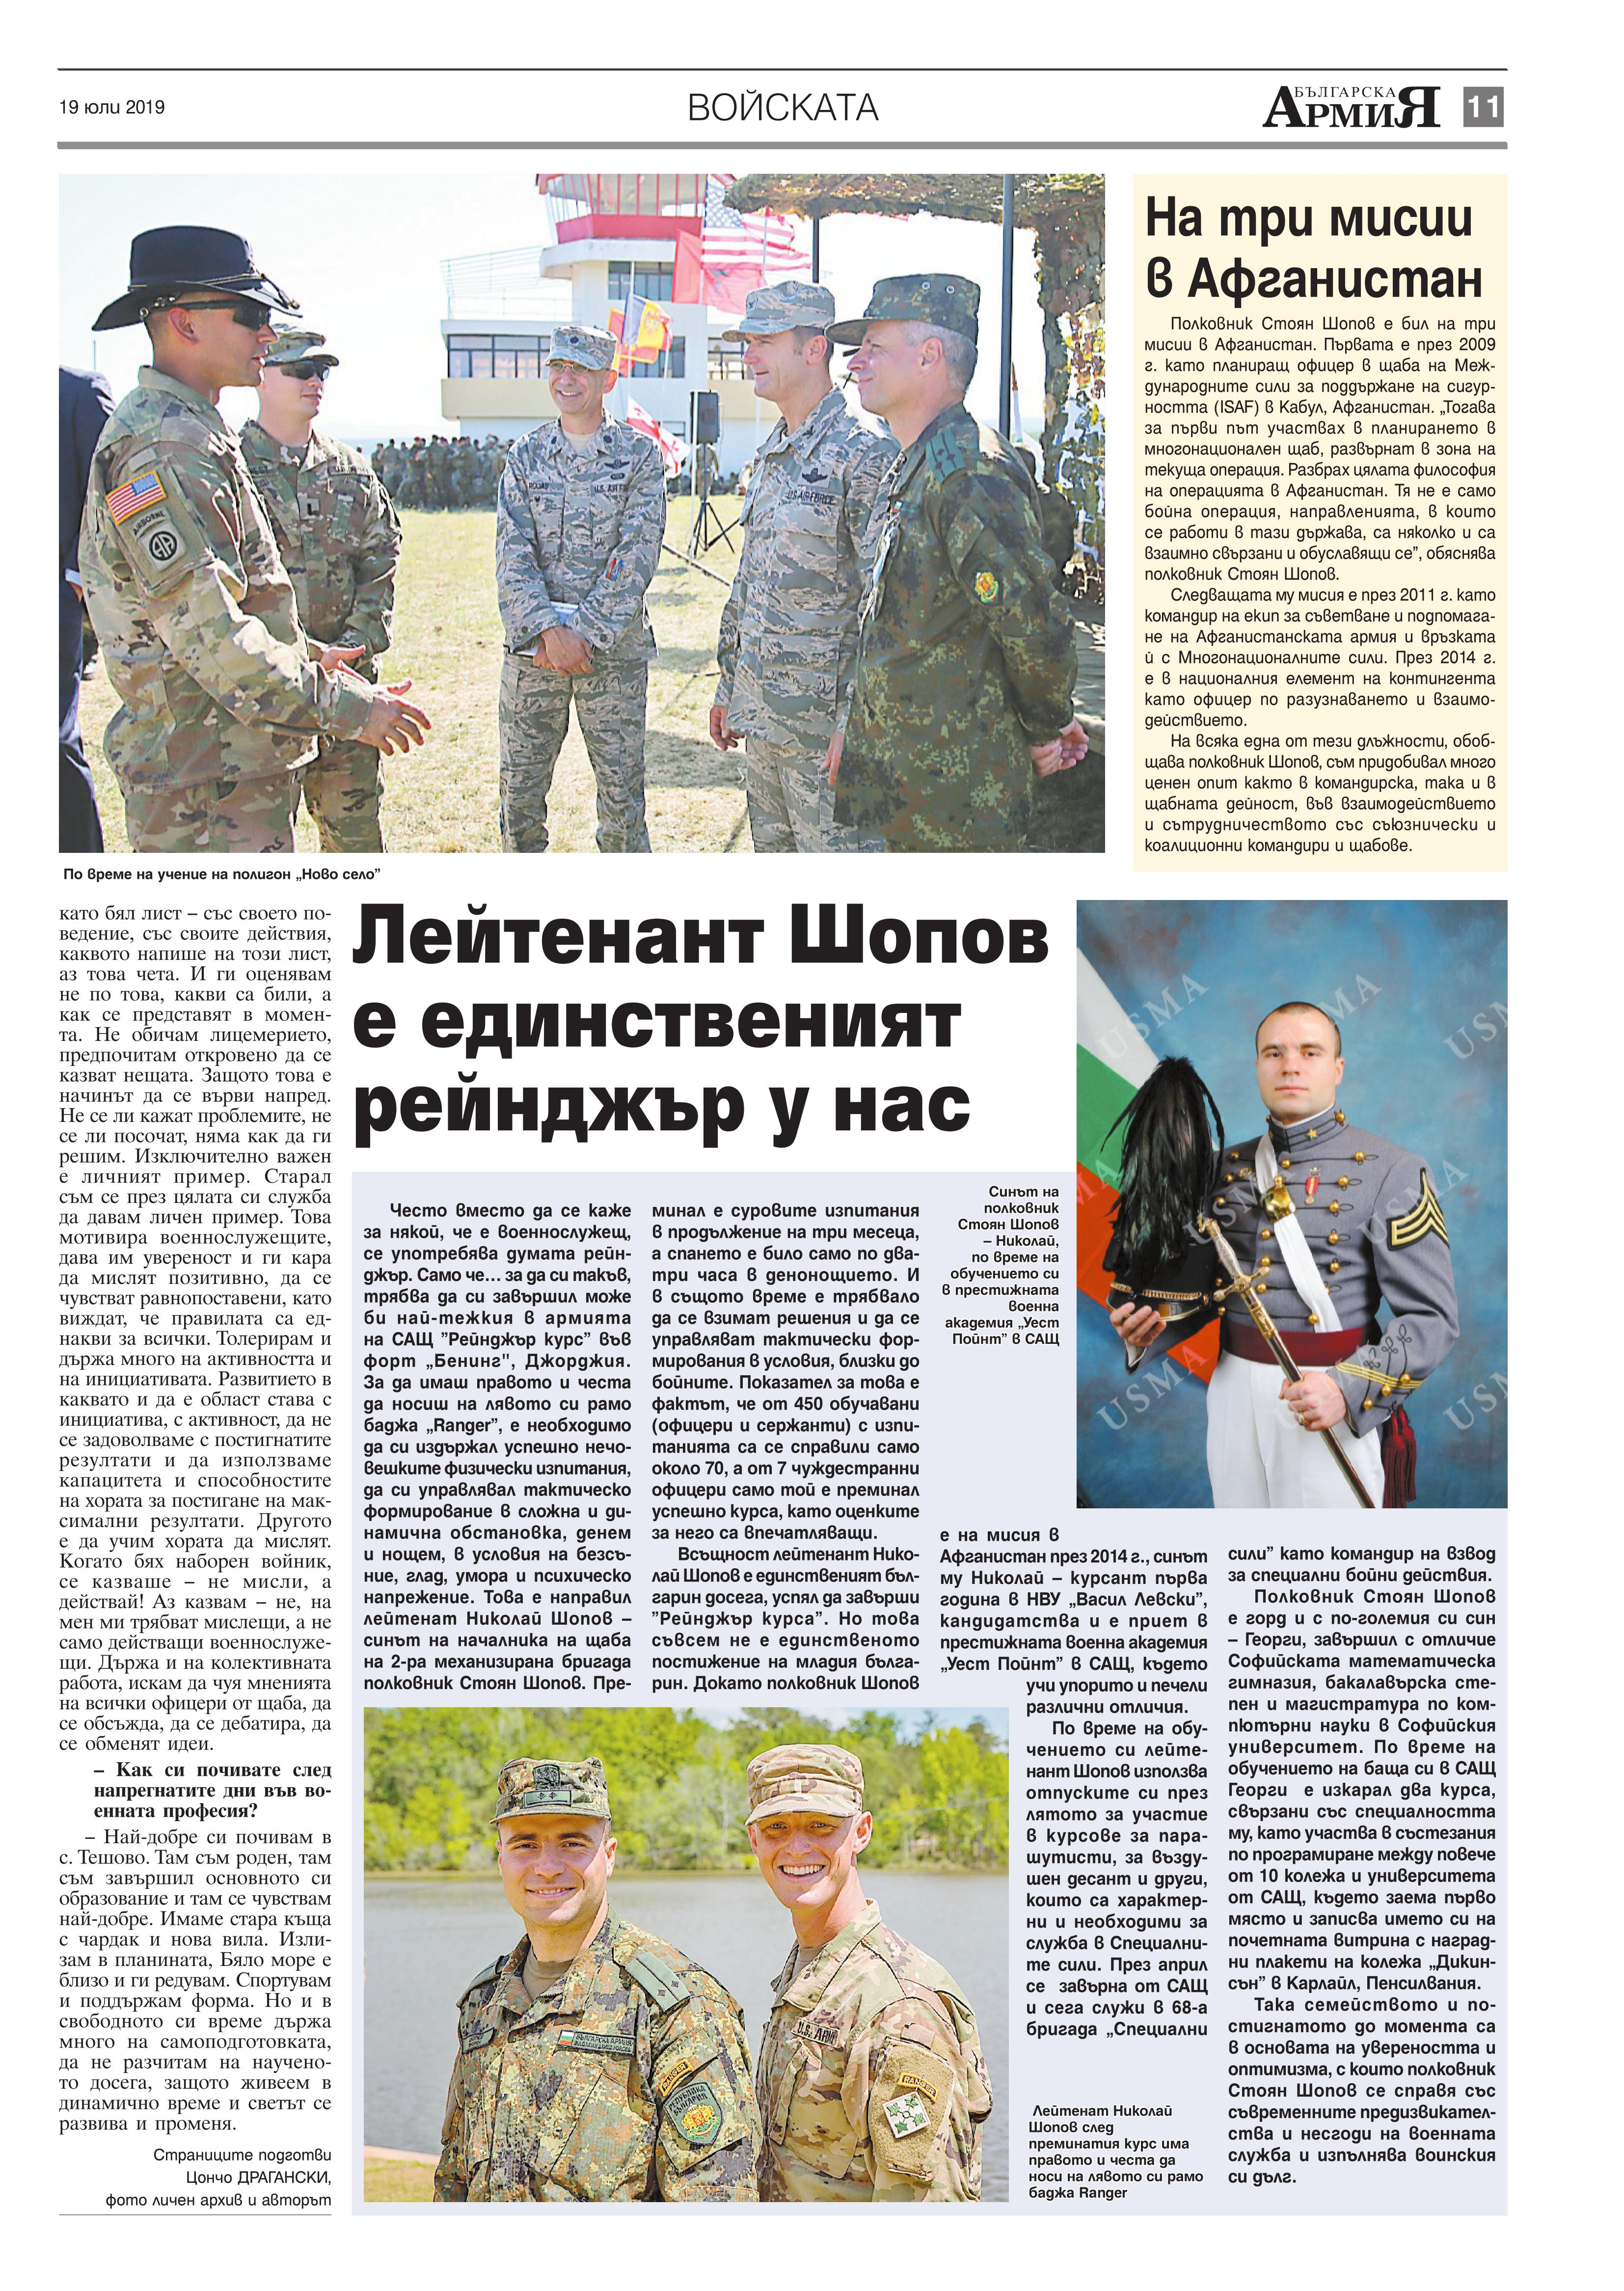 https://www.armymedia.bg/wp-content/uploads/2015/06/11.page1_-103.jpg